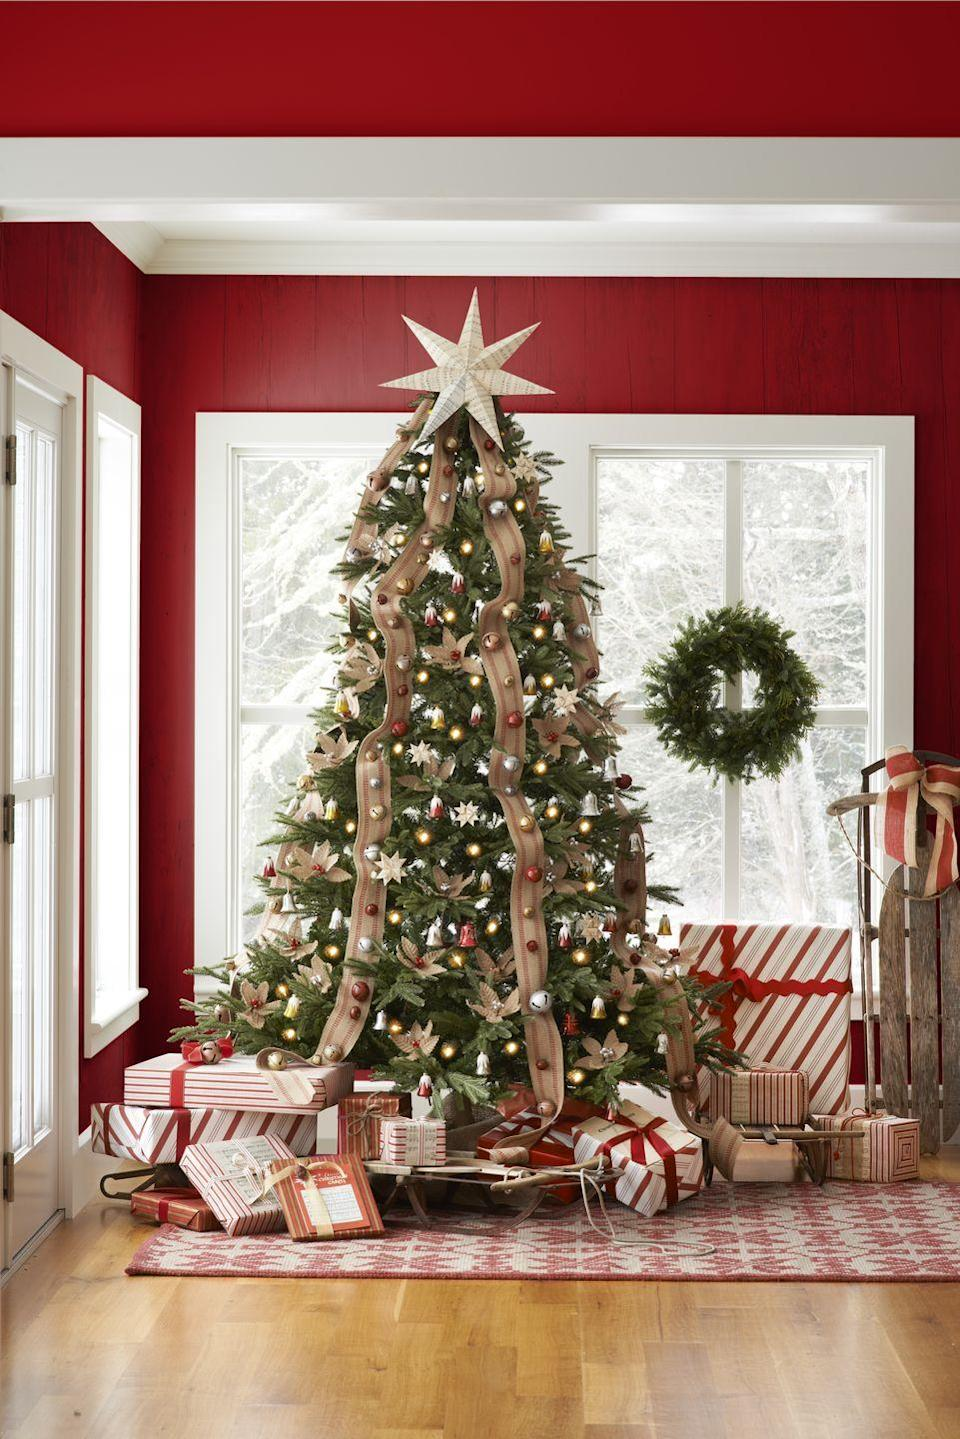 """<p>For a rustic look, cascade striped jute ribbon—such as upholstery webbing—down the complete height of your Christmas tree. Add additional holiday charm by attaching jingle bells to the ribbon with glue or a few simple stitches. </p><p><a class=""""link rapid-noclick-resp"""" href=""""https://www.amazon.com/Upholstery-Craft-Jute-Webbing-Rolls/dp/B07BQB2L6X/ref=sr_1_4?tag=syn-yahoo-20&ascsubtag=%5Bartid%7C10050.g.28703522%5Bsrc%7Cyahoo-us"""" rel=""""nofollow noopener"""" target=""""_blank"""" data-ylk=""""slk:SHOP JUTE UPHOLSTERY WEBBING"""">SHOP JUTE UPHOLSTERY WEBBING</a><br></p>"""